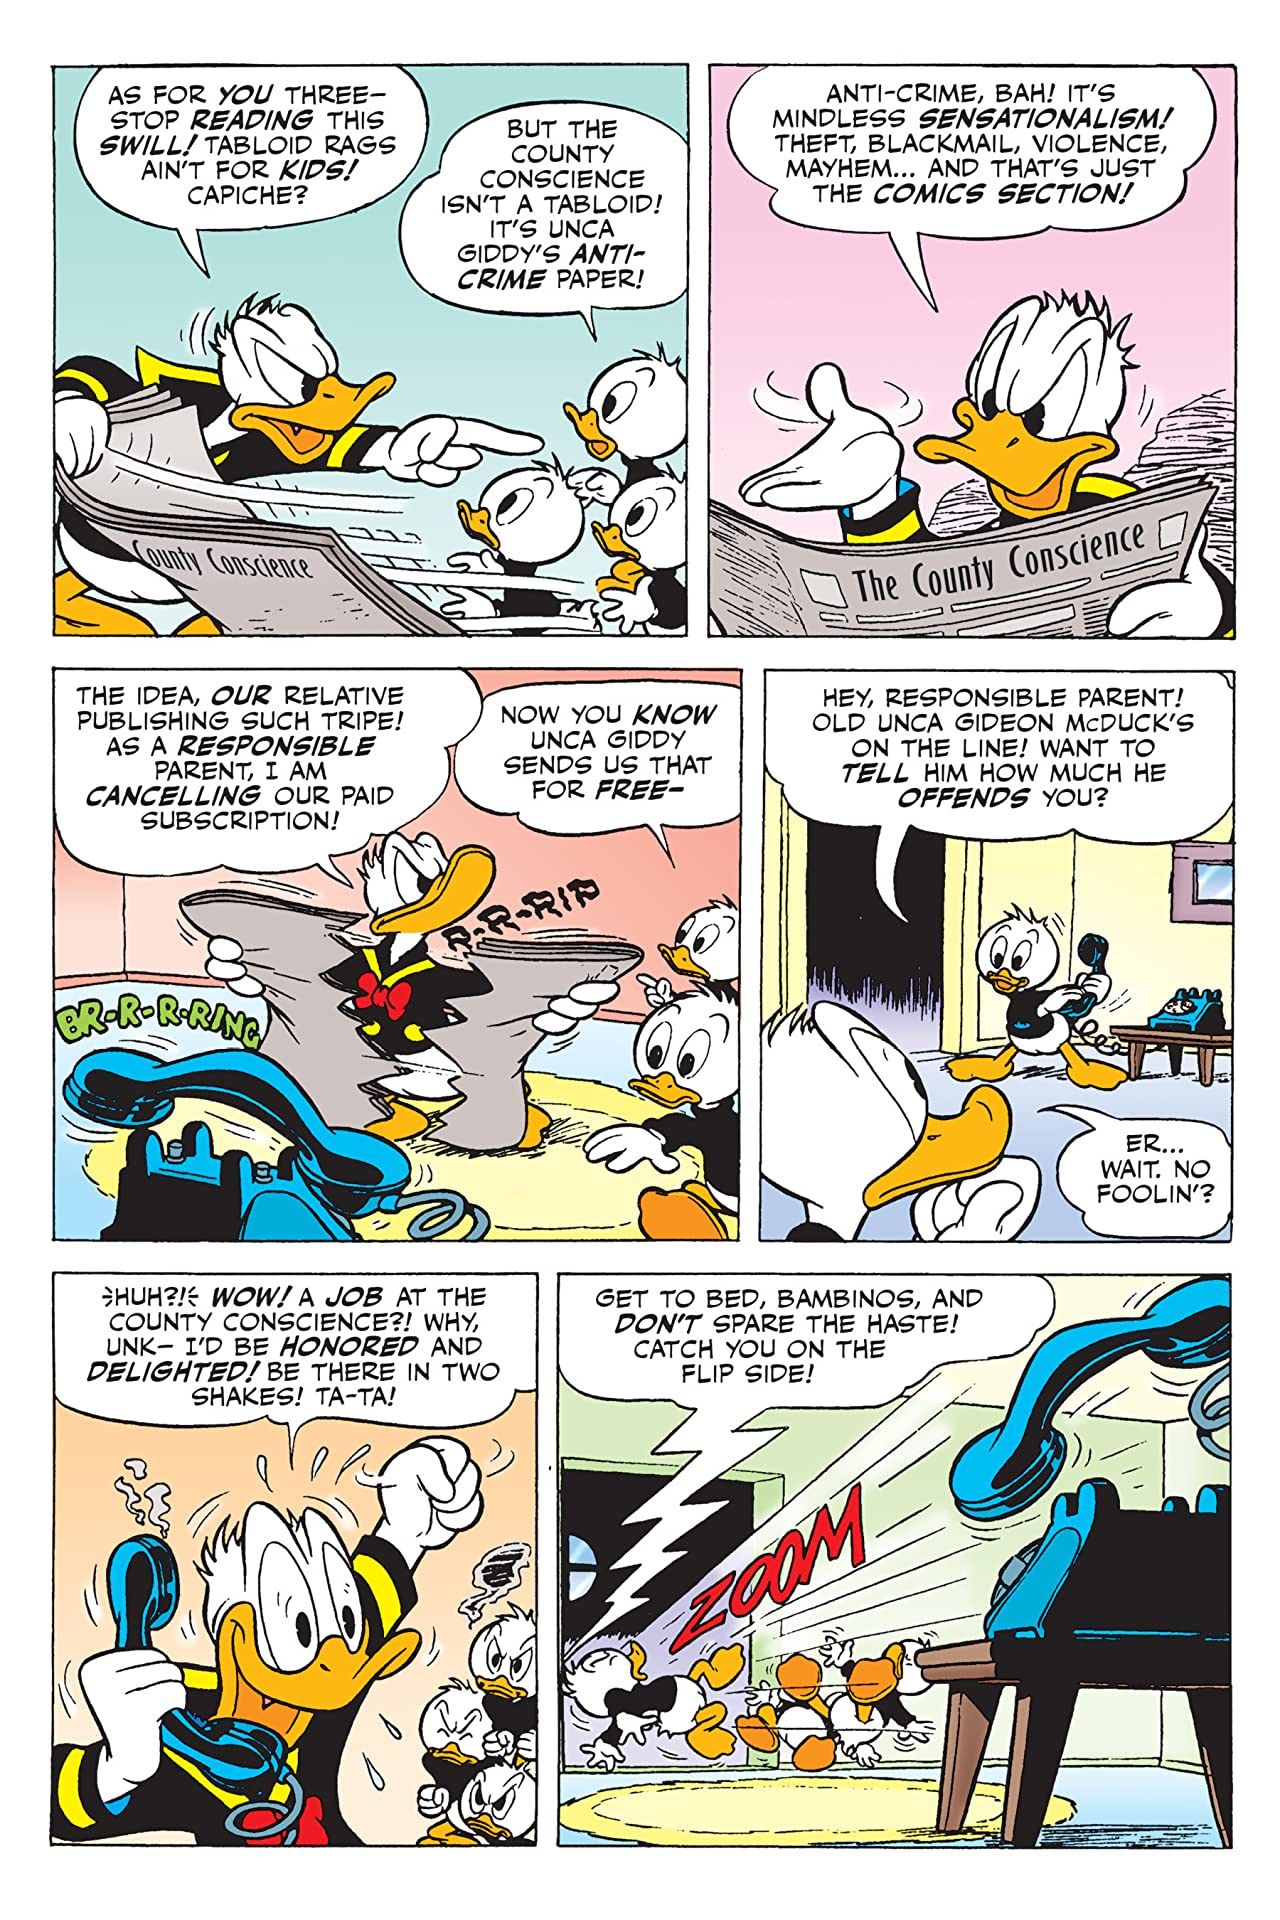 Donald Duck Vol. 1: Shellfish Motives